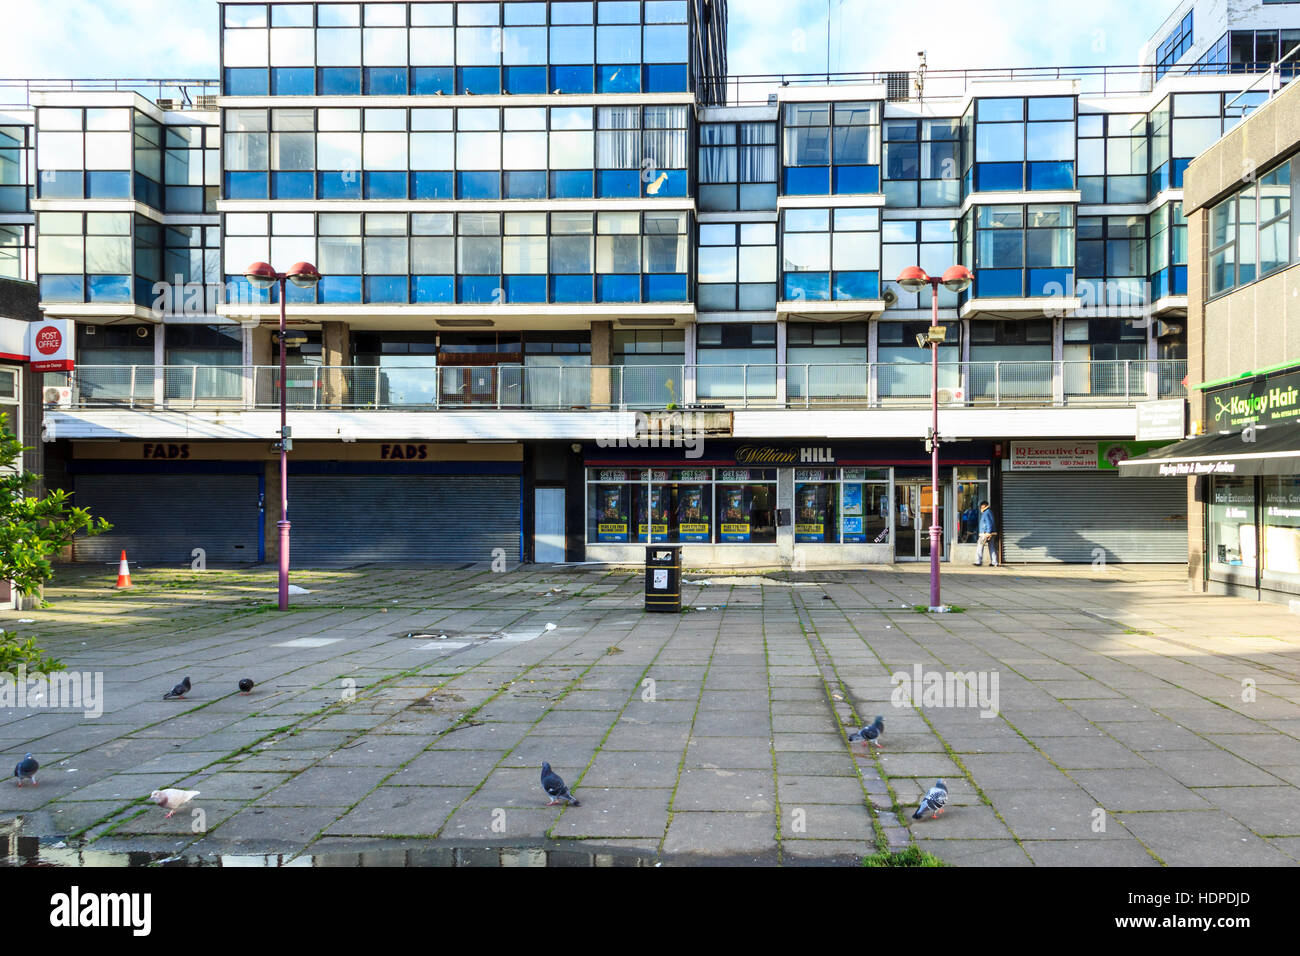 Archway Mall and the unoccupied Hill House before redevelopment by Bode, Islington, North London, UK - Stock Image